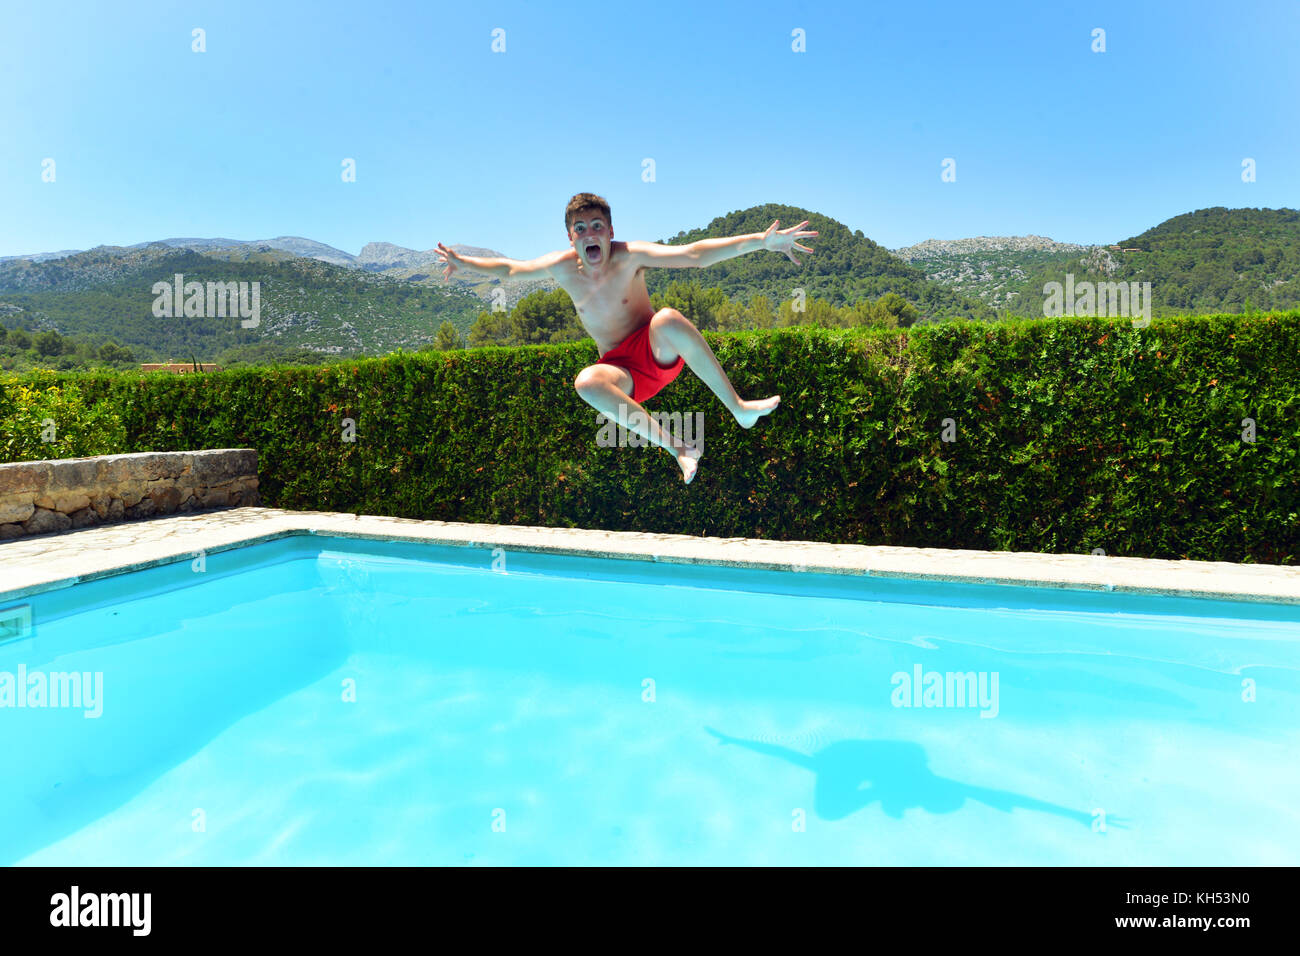 Teenage boy jumping dans une villa privée piscine Photo Stock